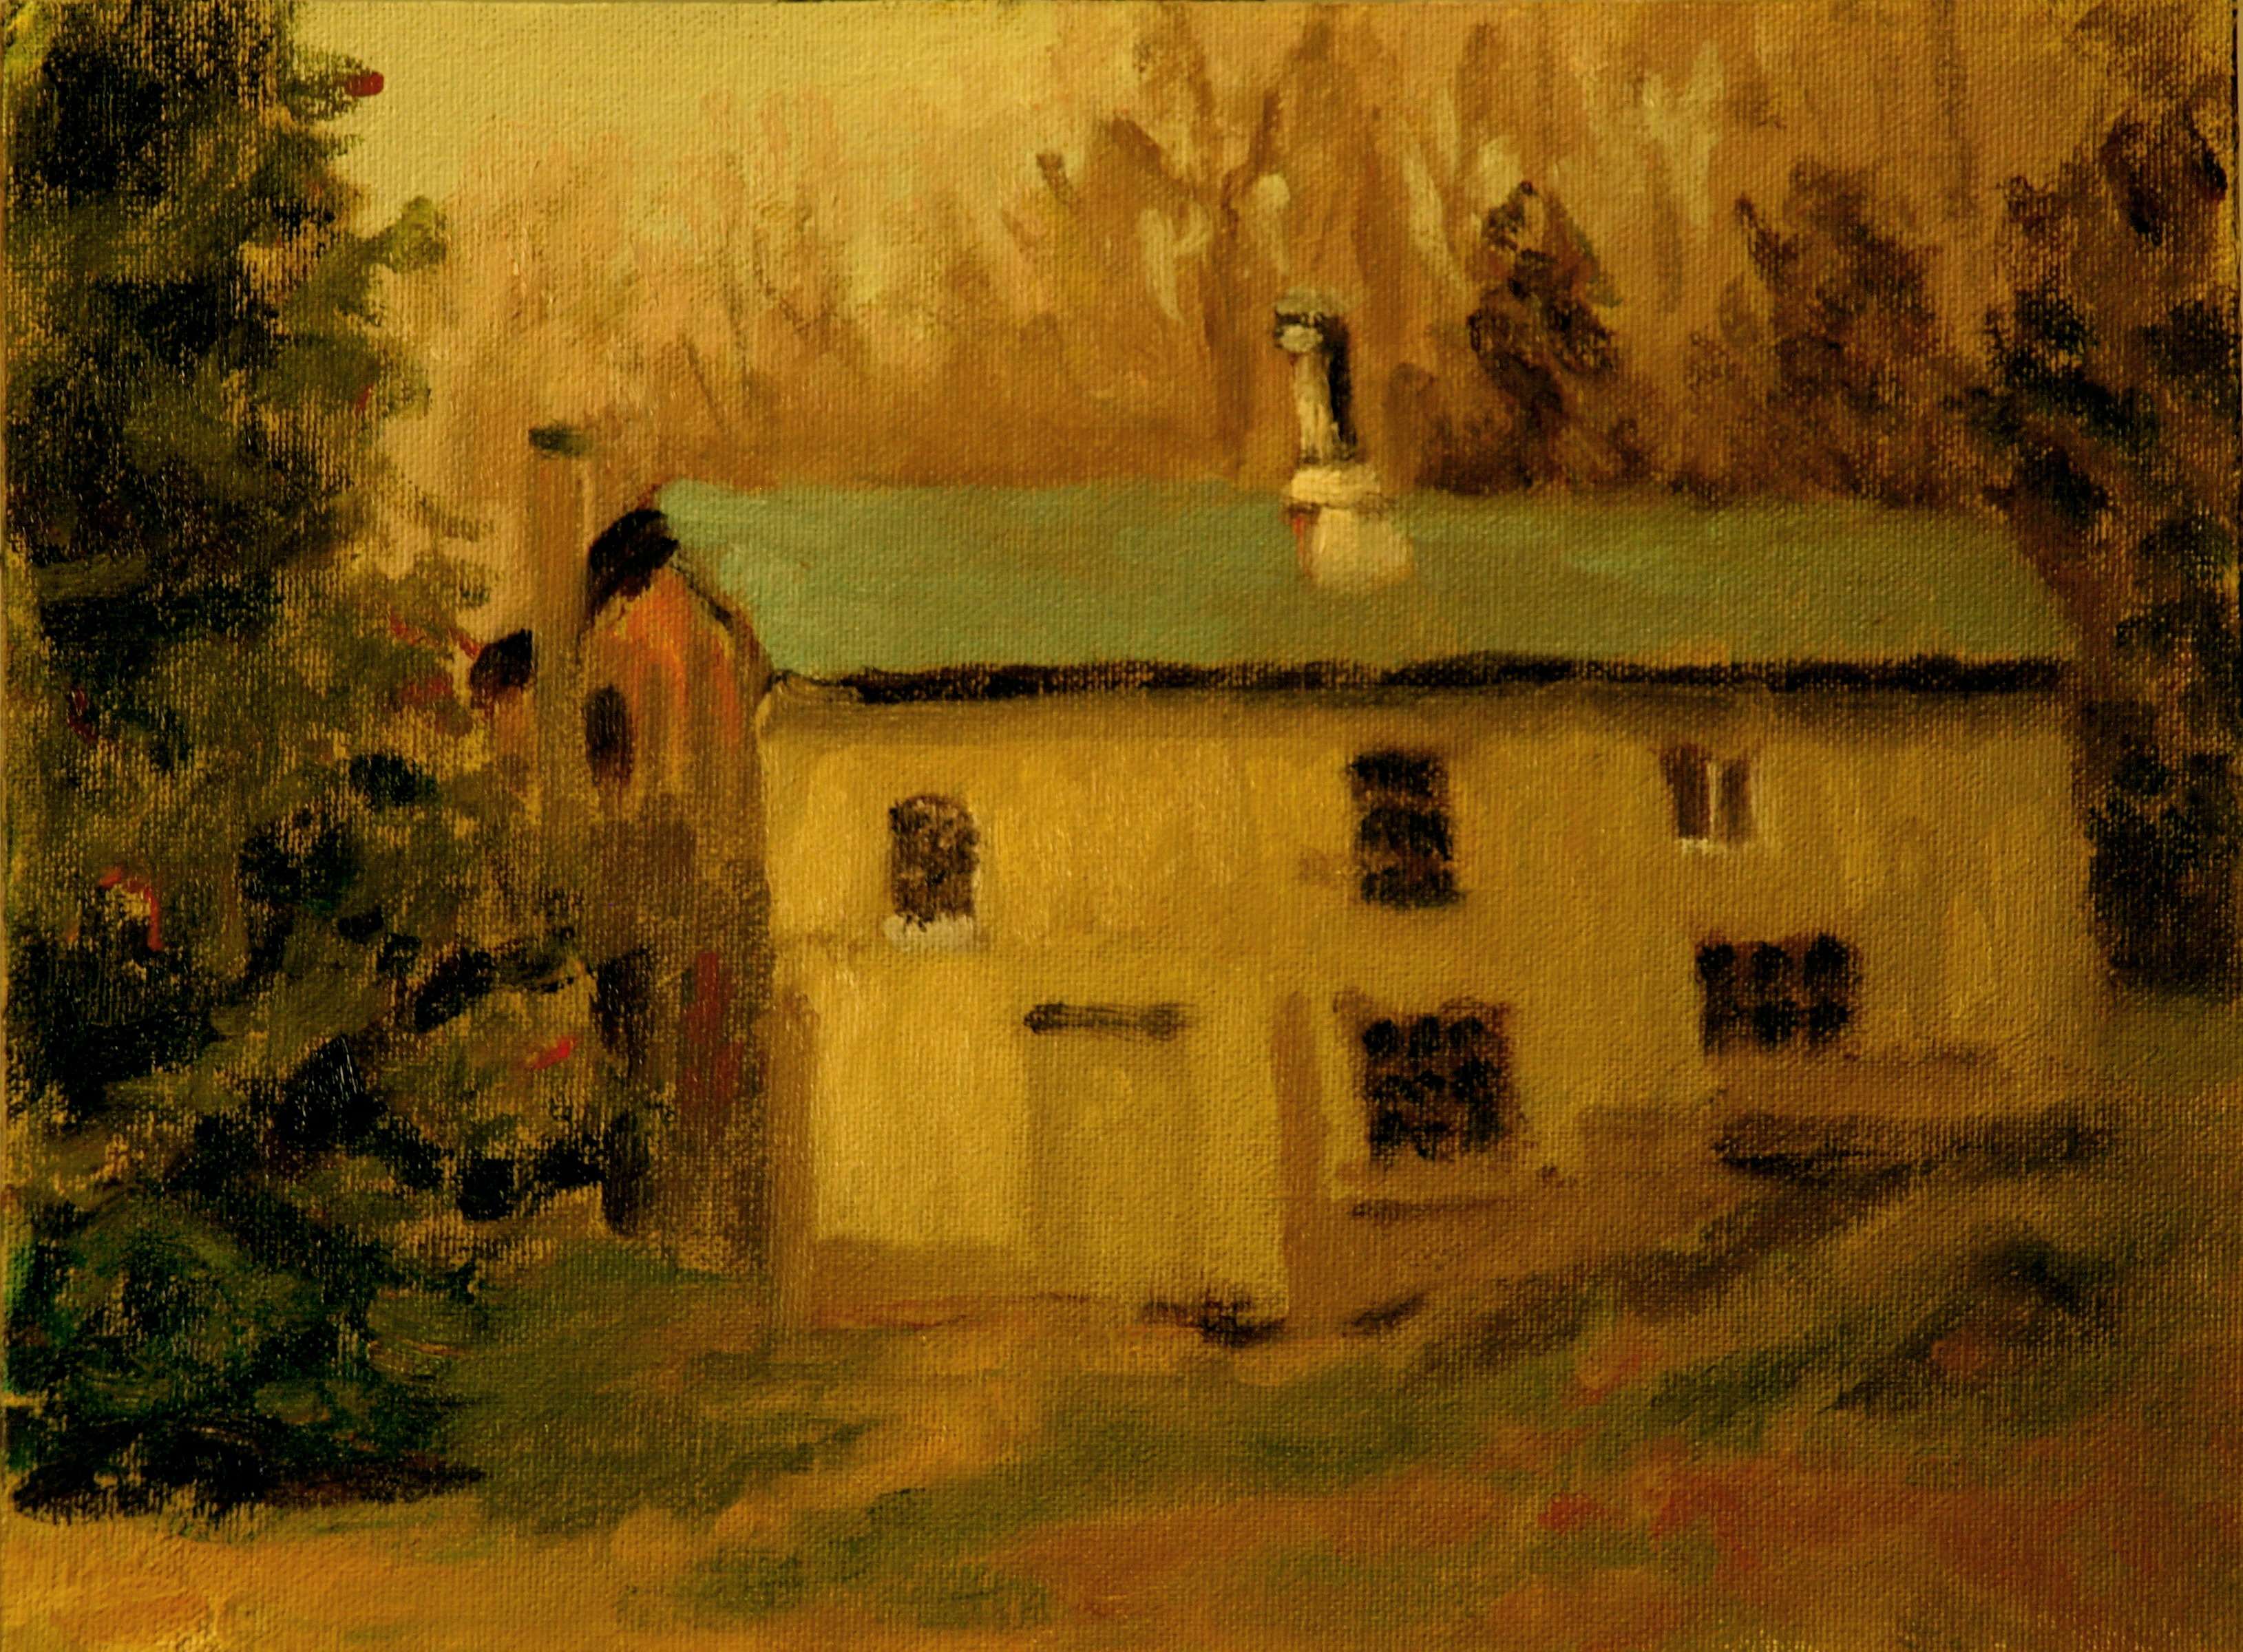 Chicken House - Early Spring, Oil on Canvas on Panel, 9 x 12 Inches, by Richard Stalter, $225